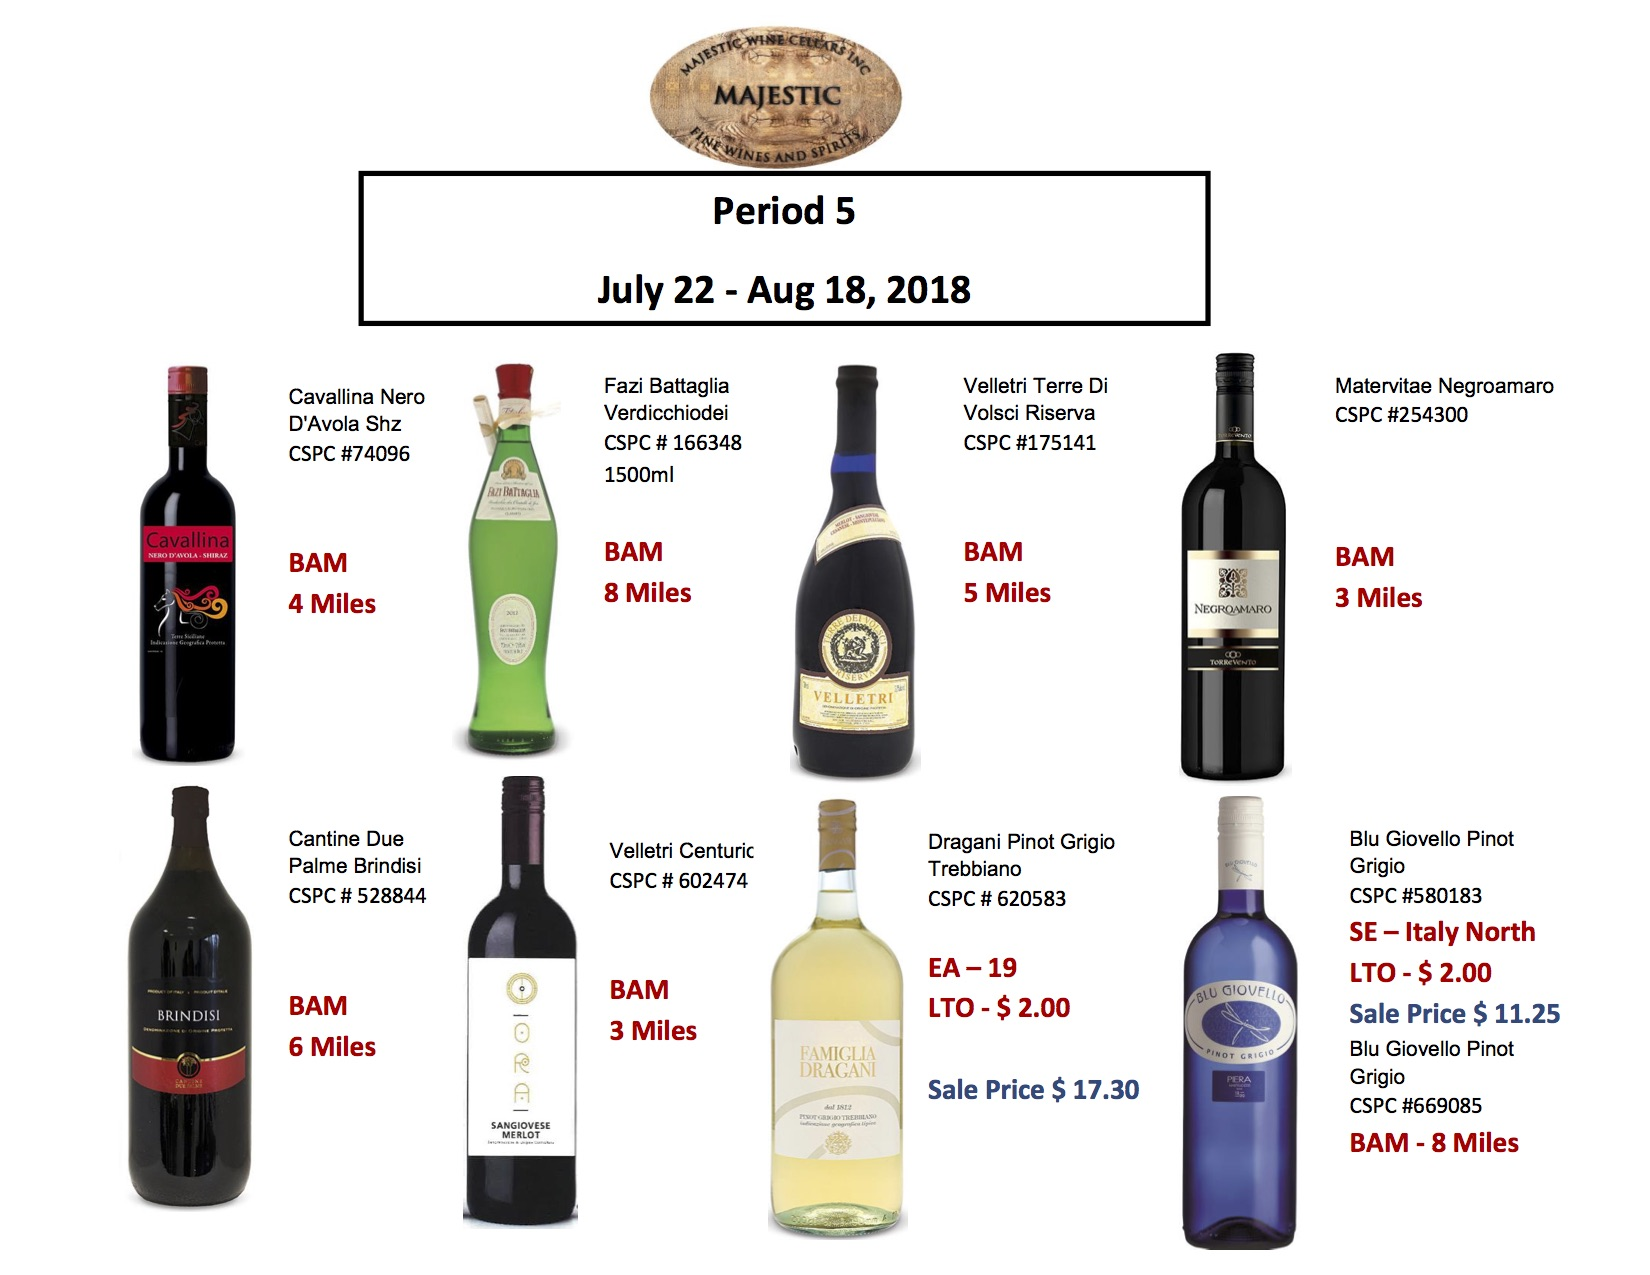 Period 5: July 22 - Aug 18, 2018 Promotion